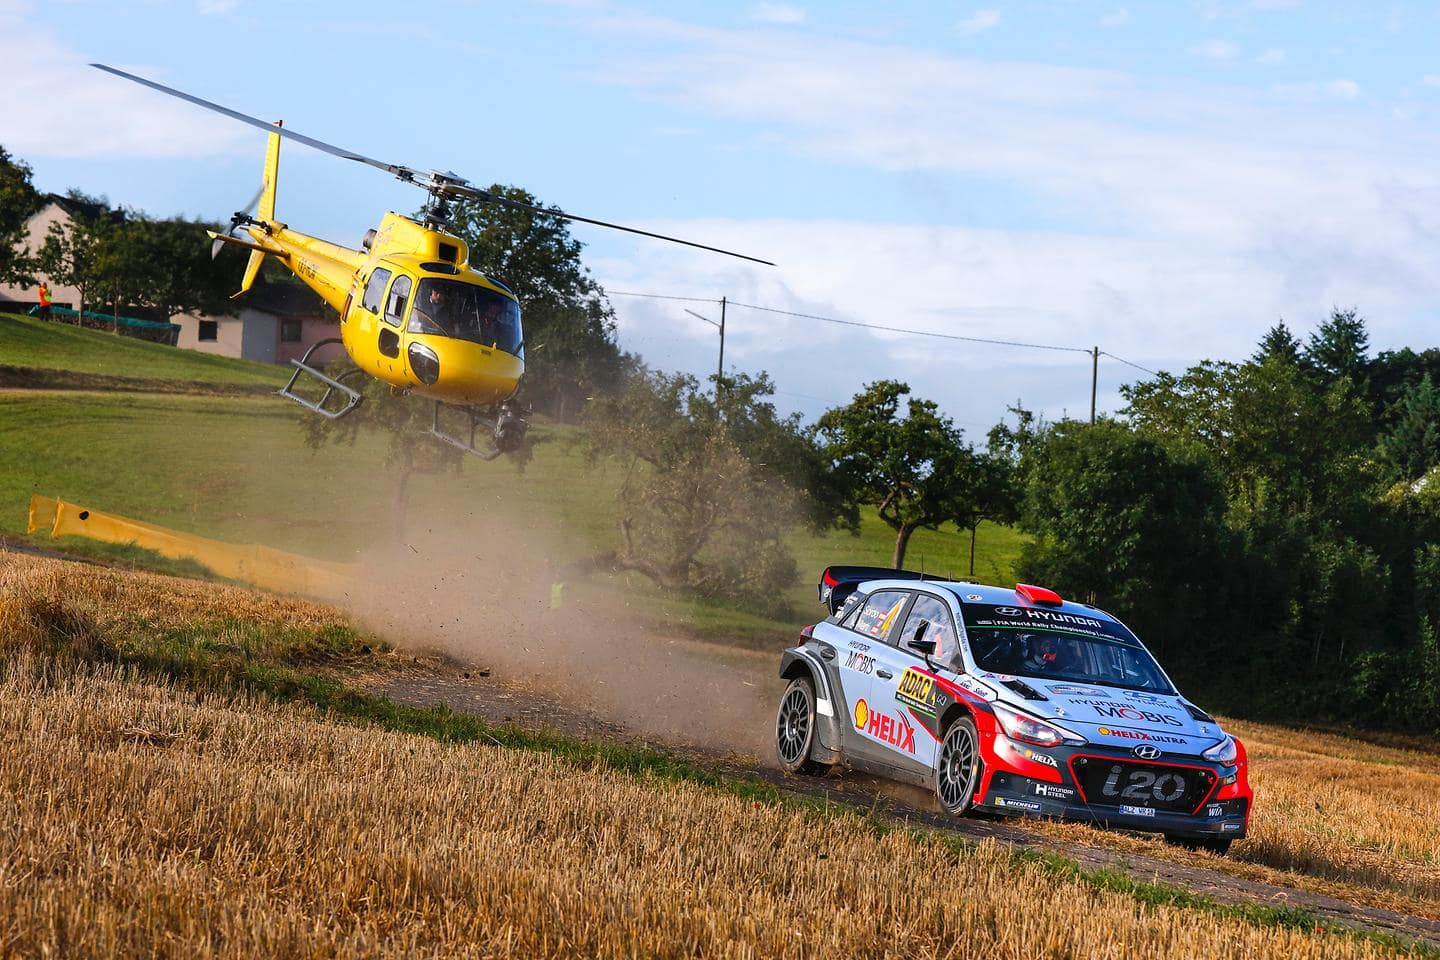 Double podium joy for Hyundai Motorsport at home in Rallye Deutschland